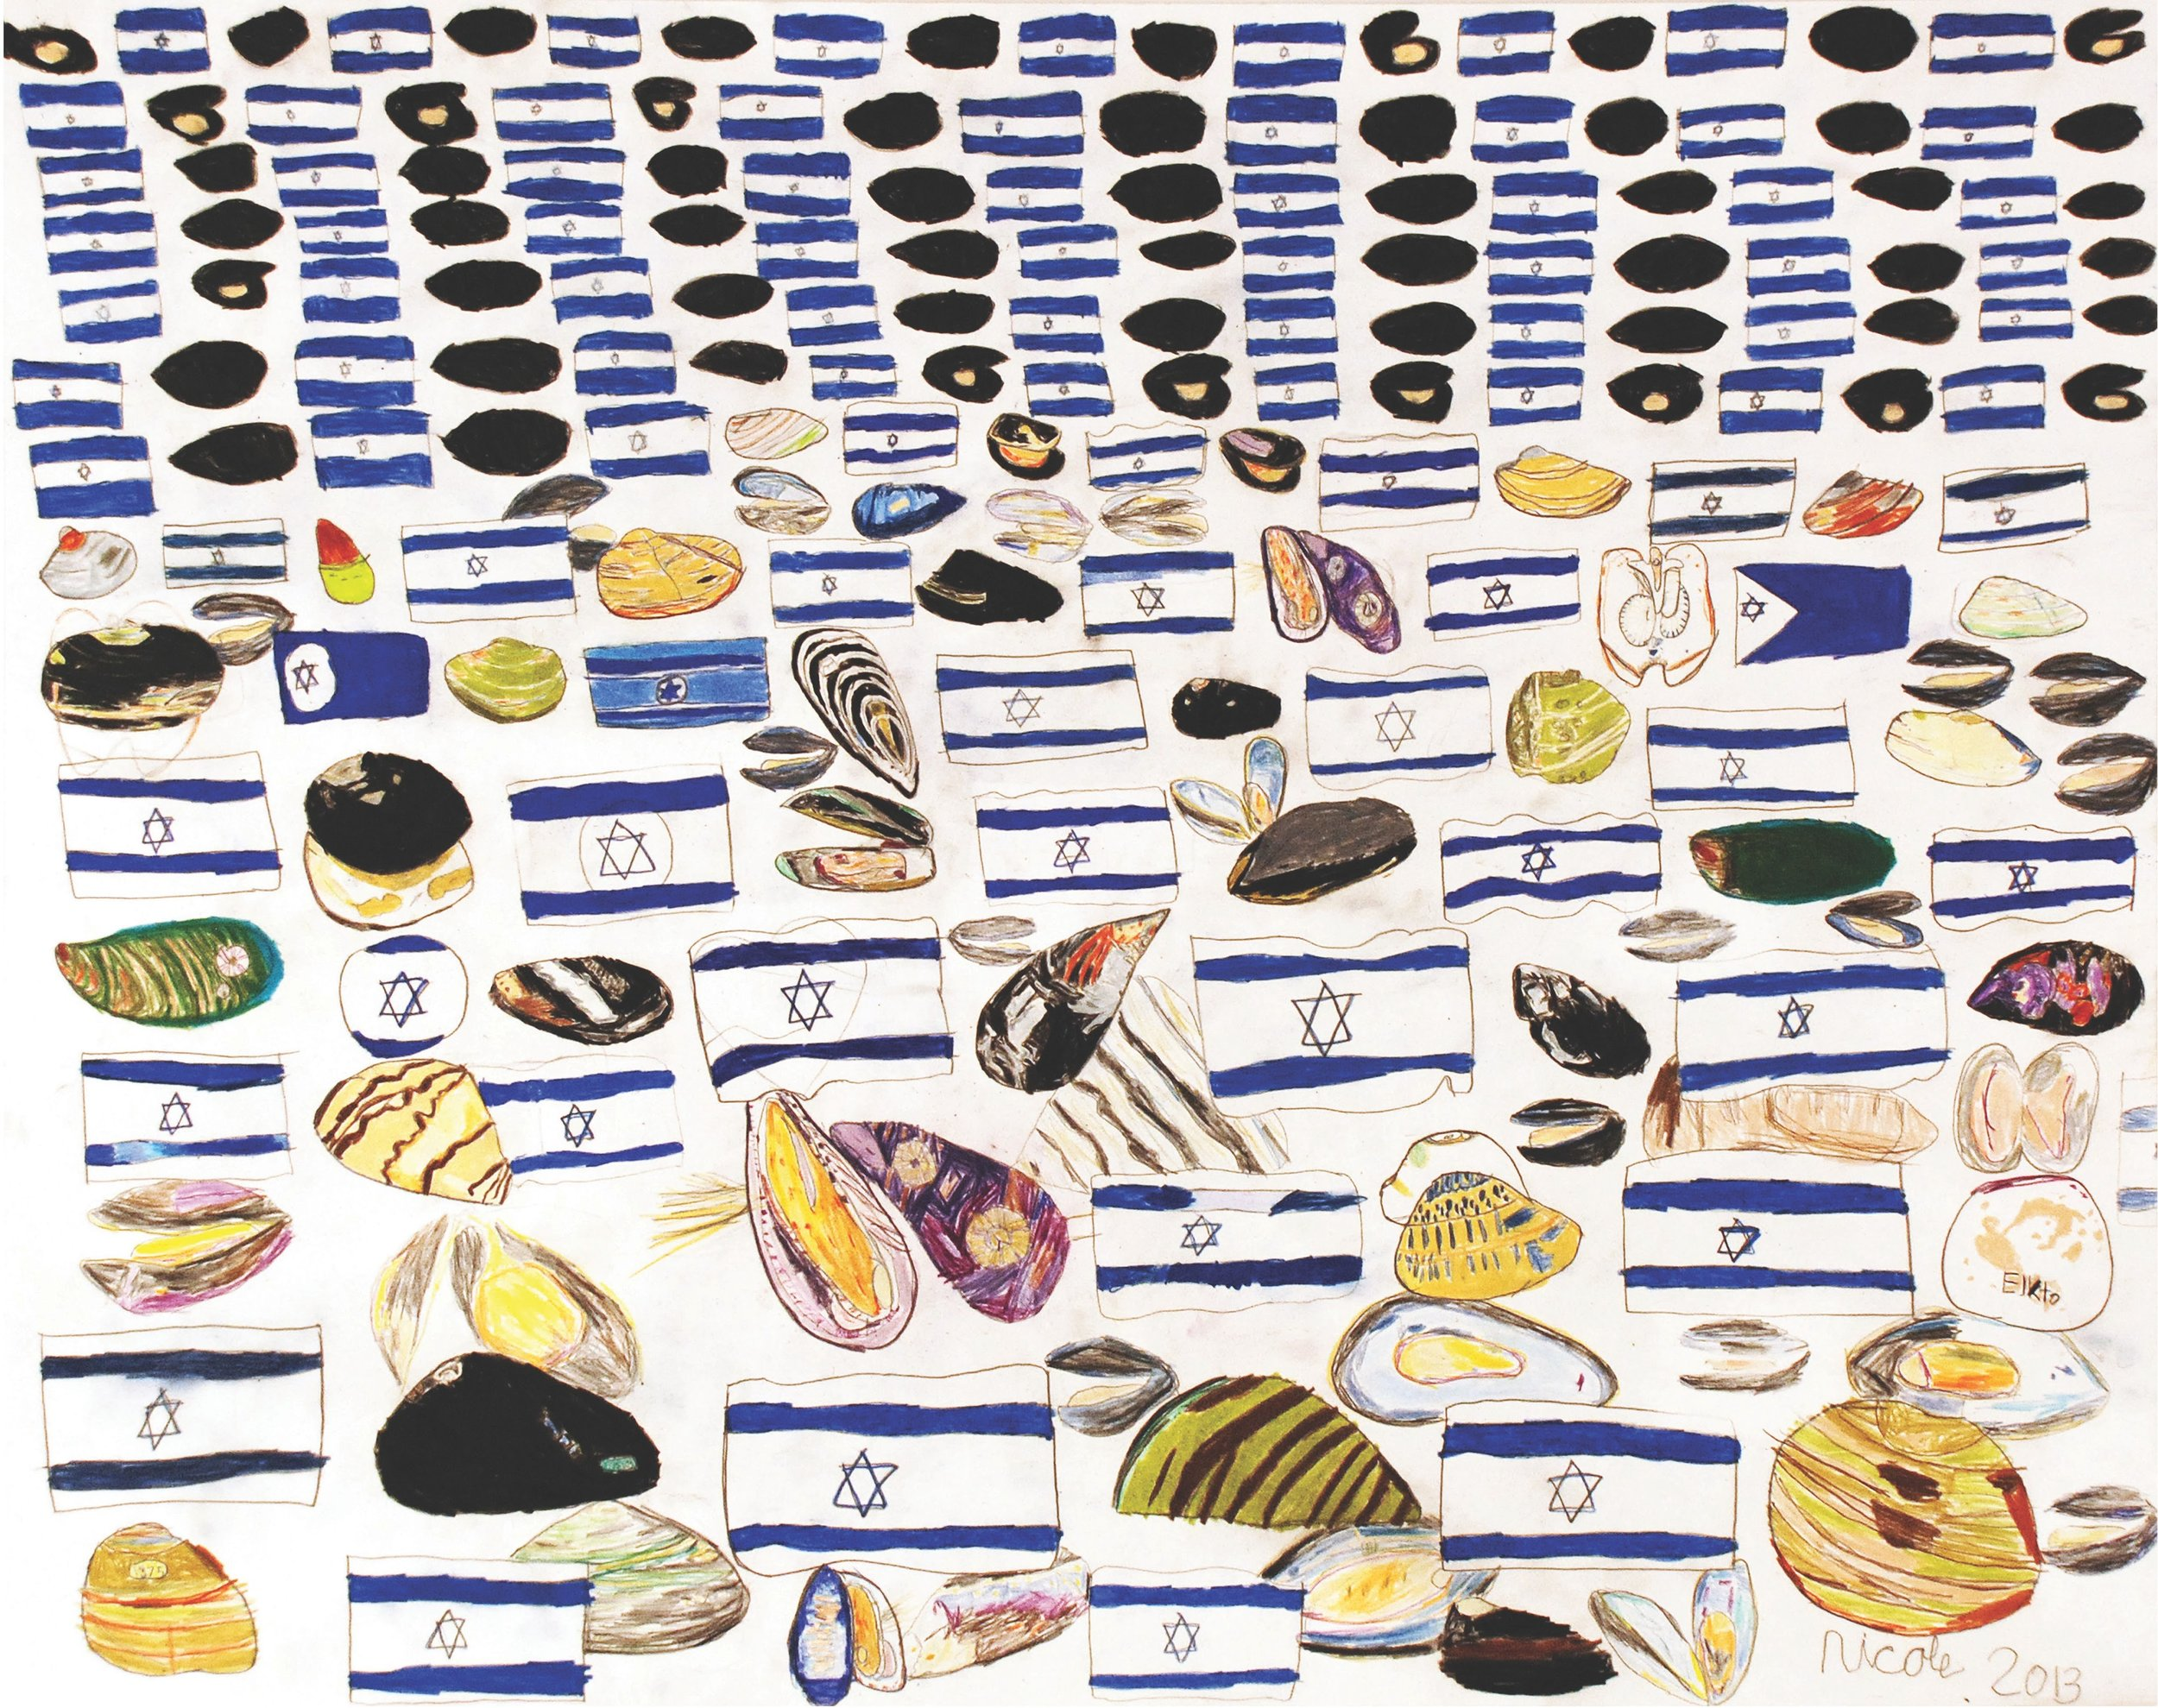 Israeli Flags and Mussels    2013   Pencil on Paper   19x24